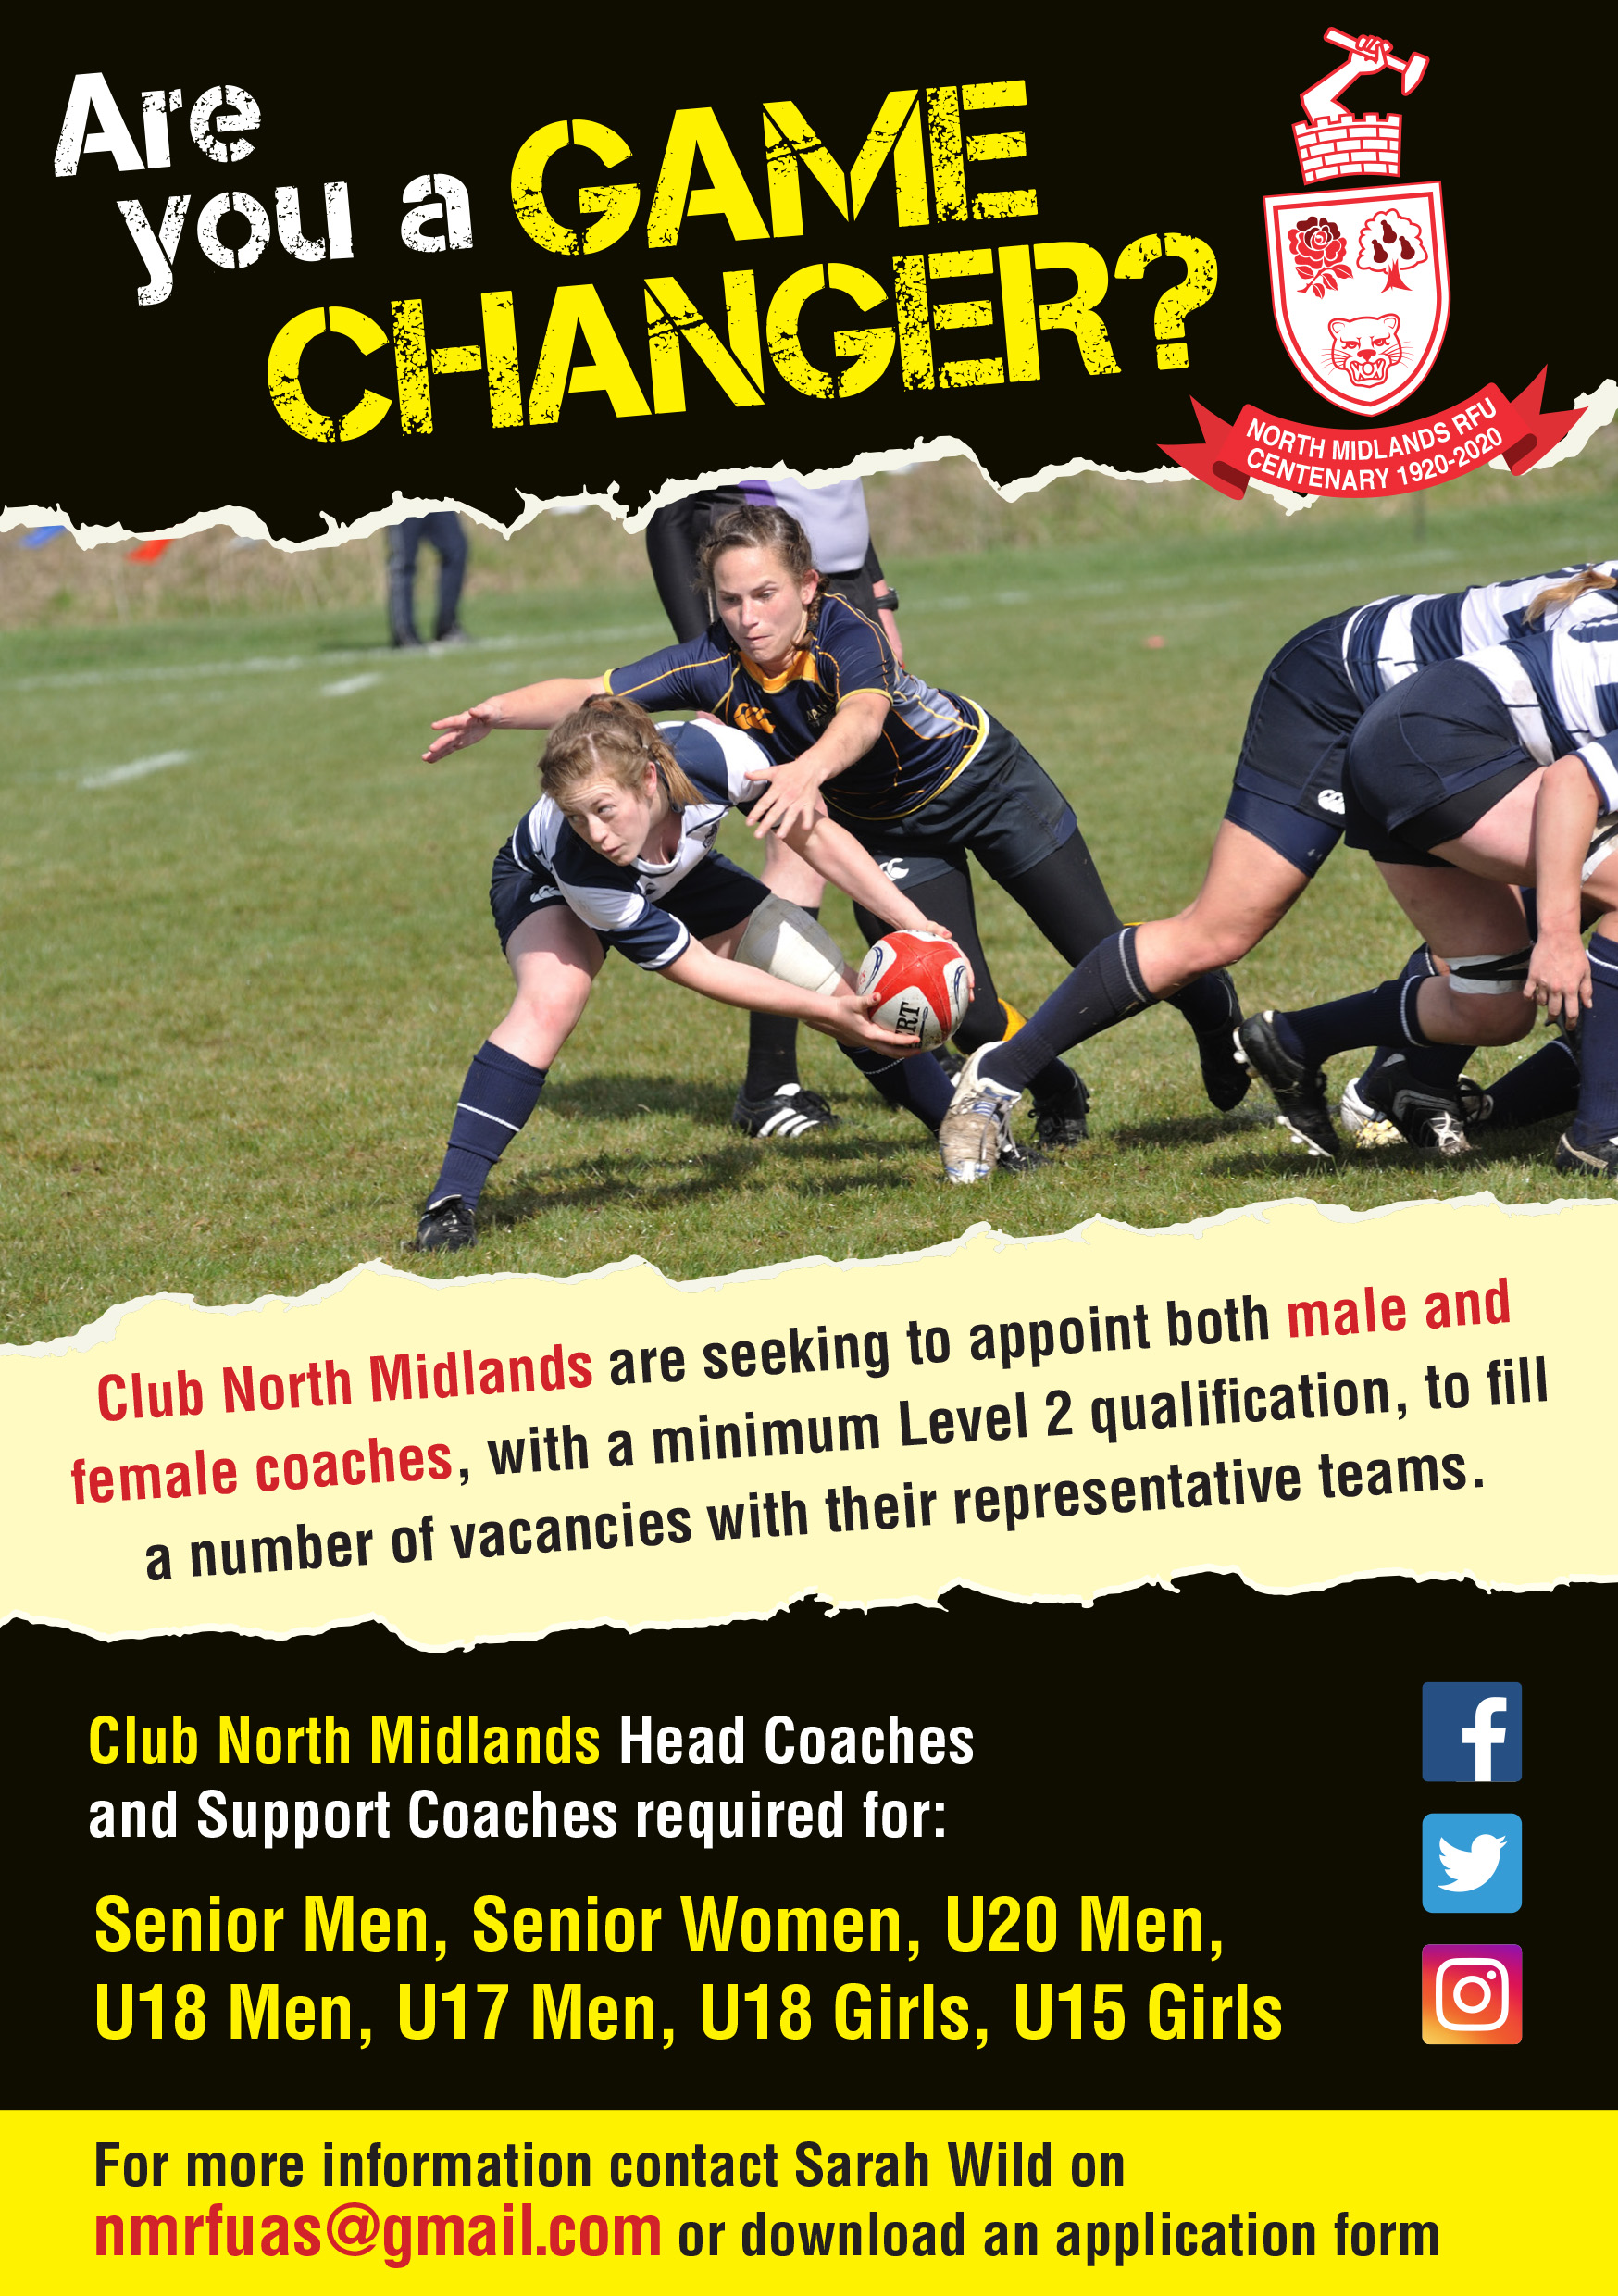 North Midlands RFU Seeking to appoint coaches for their representative teams